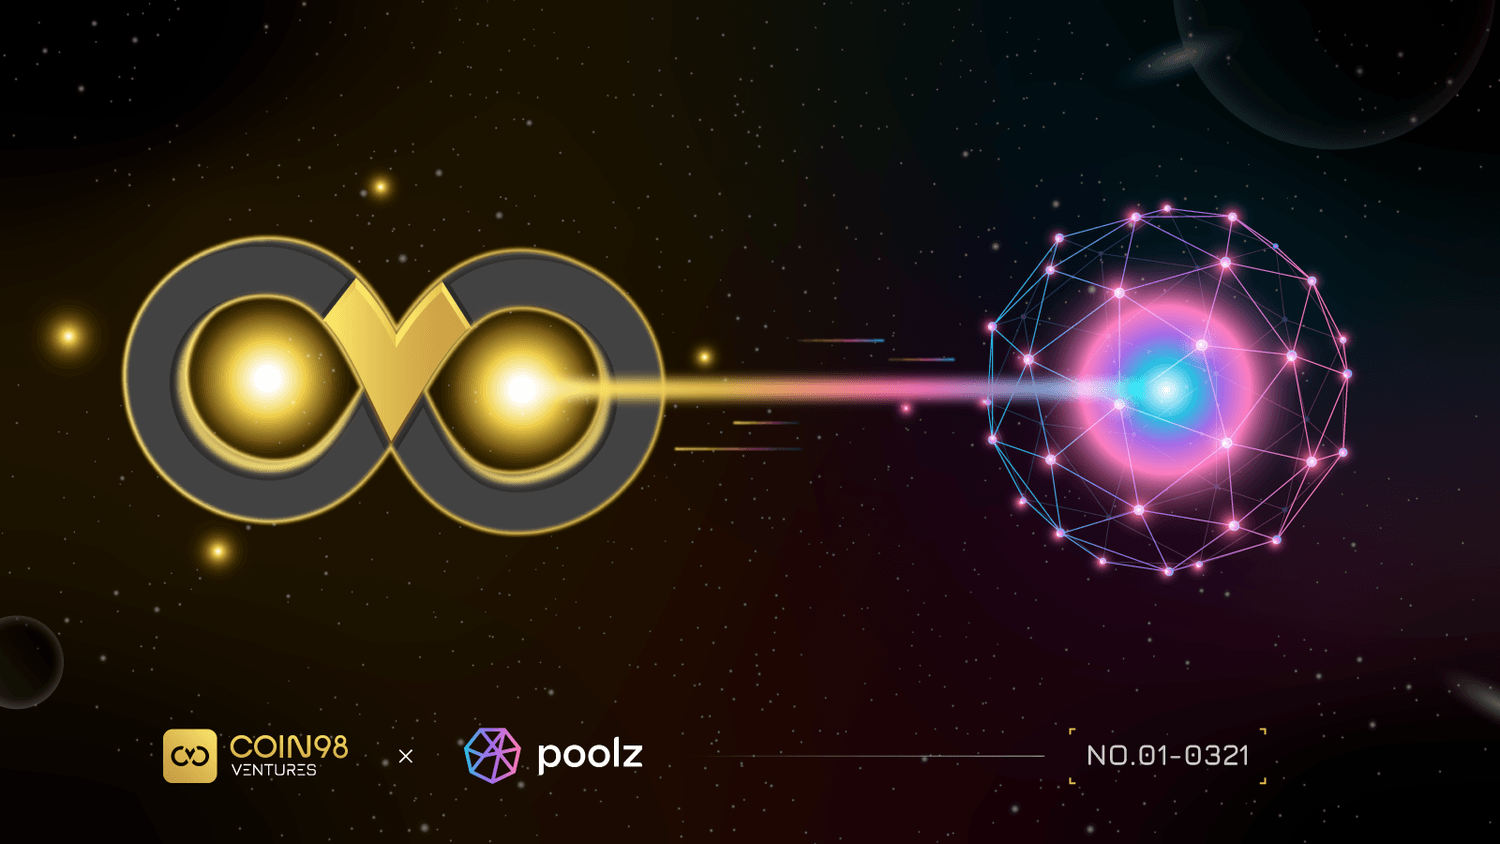 Coin98 Ventures partners with Poolz to boost the potential of DeFi projects in SEA